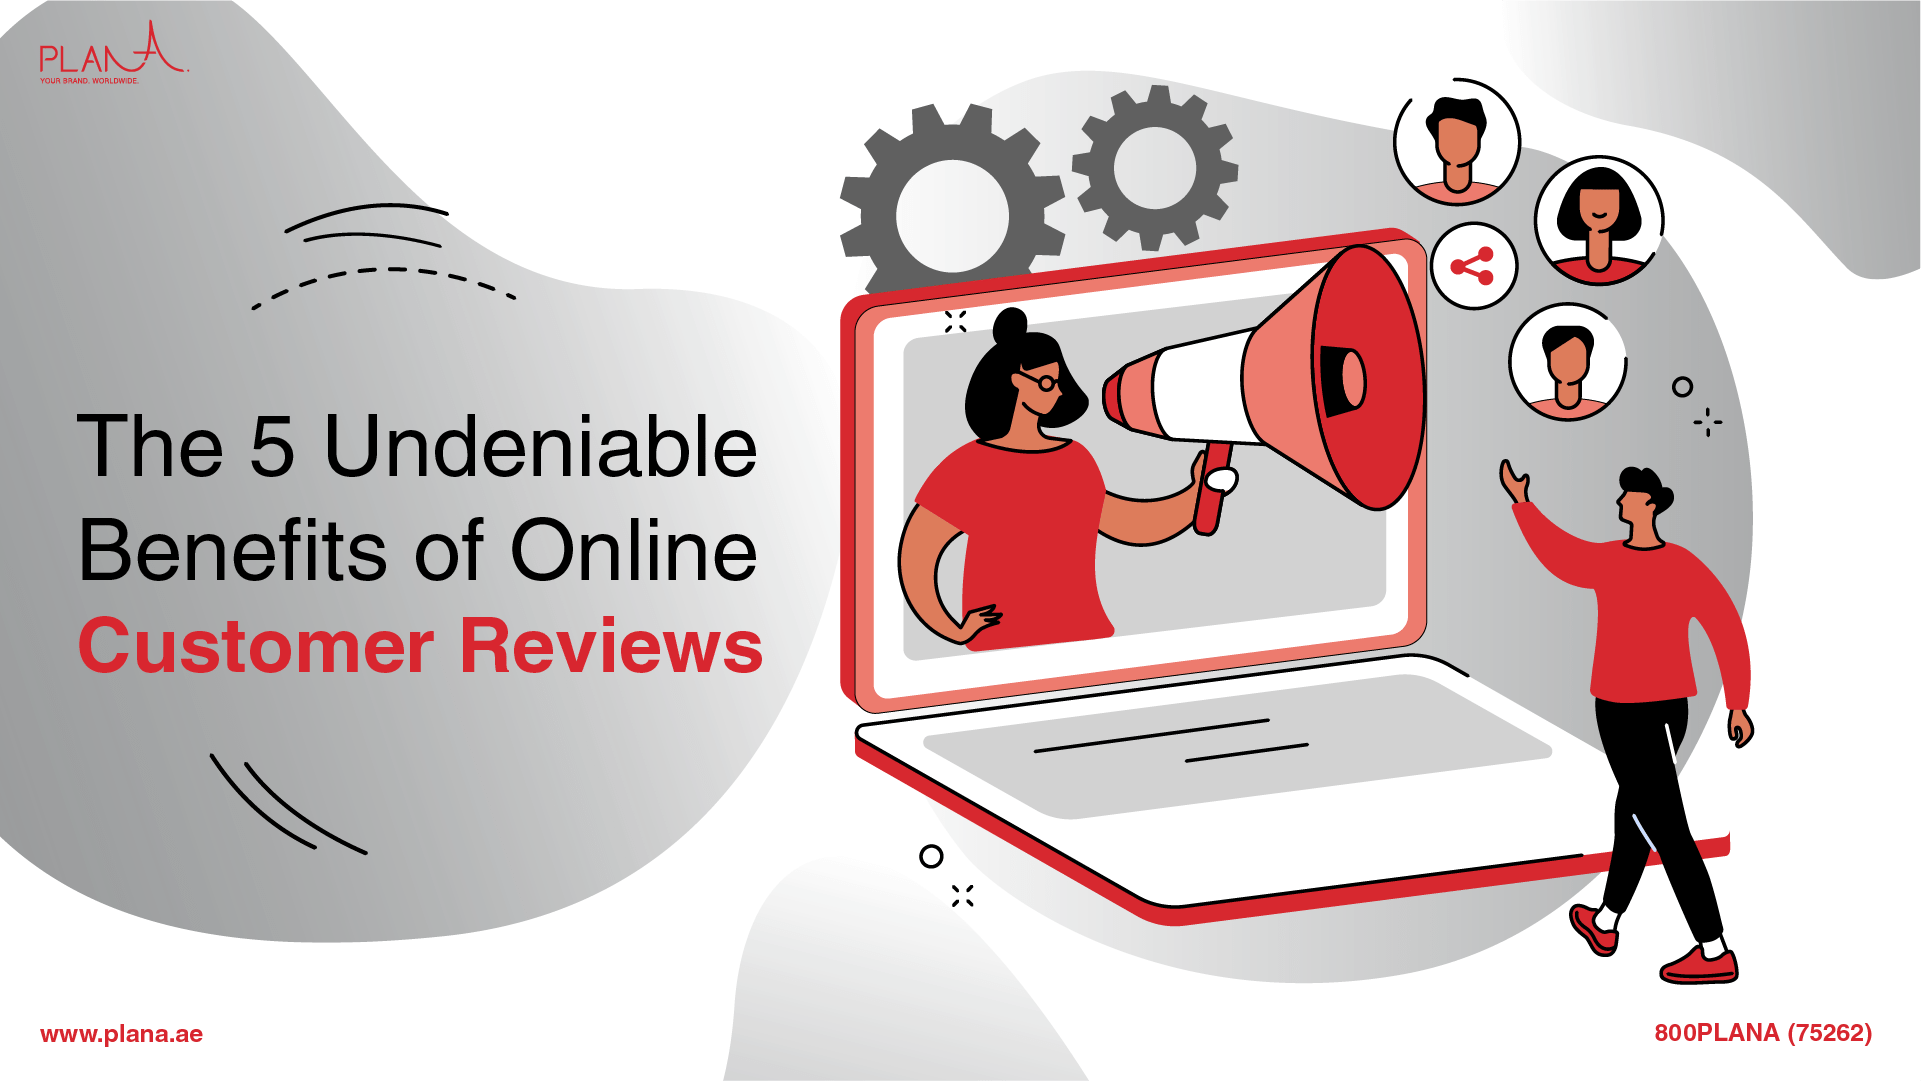 The 5 Undeniable Benefits of Online Customer Reviews